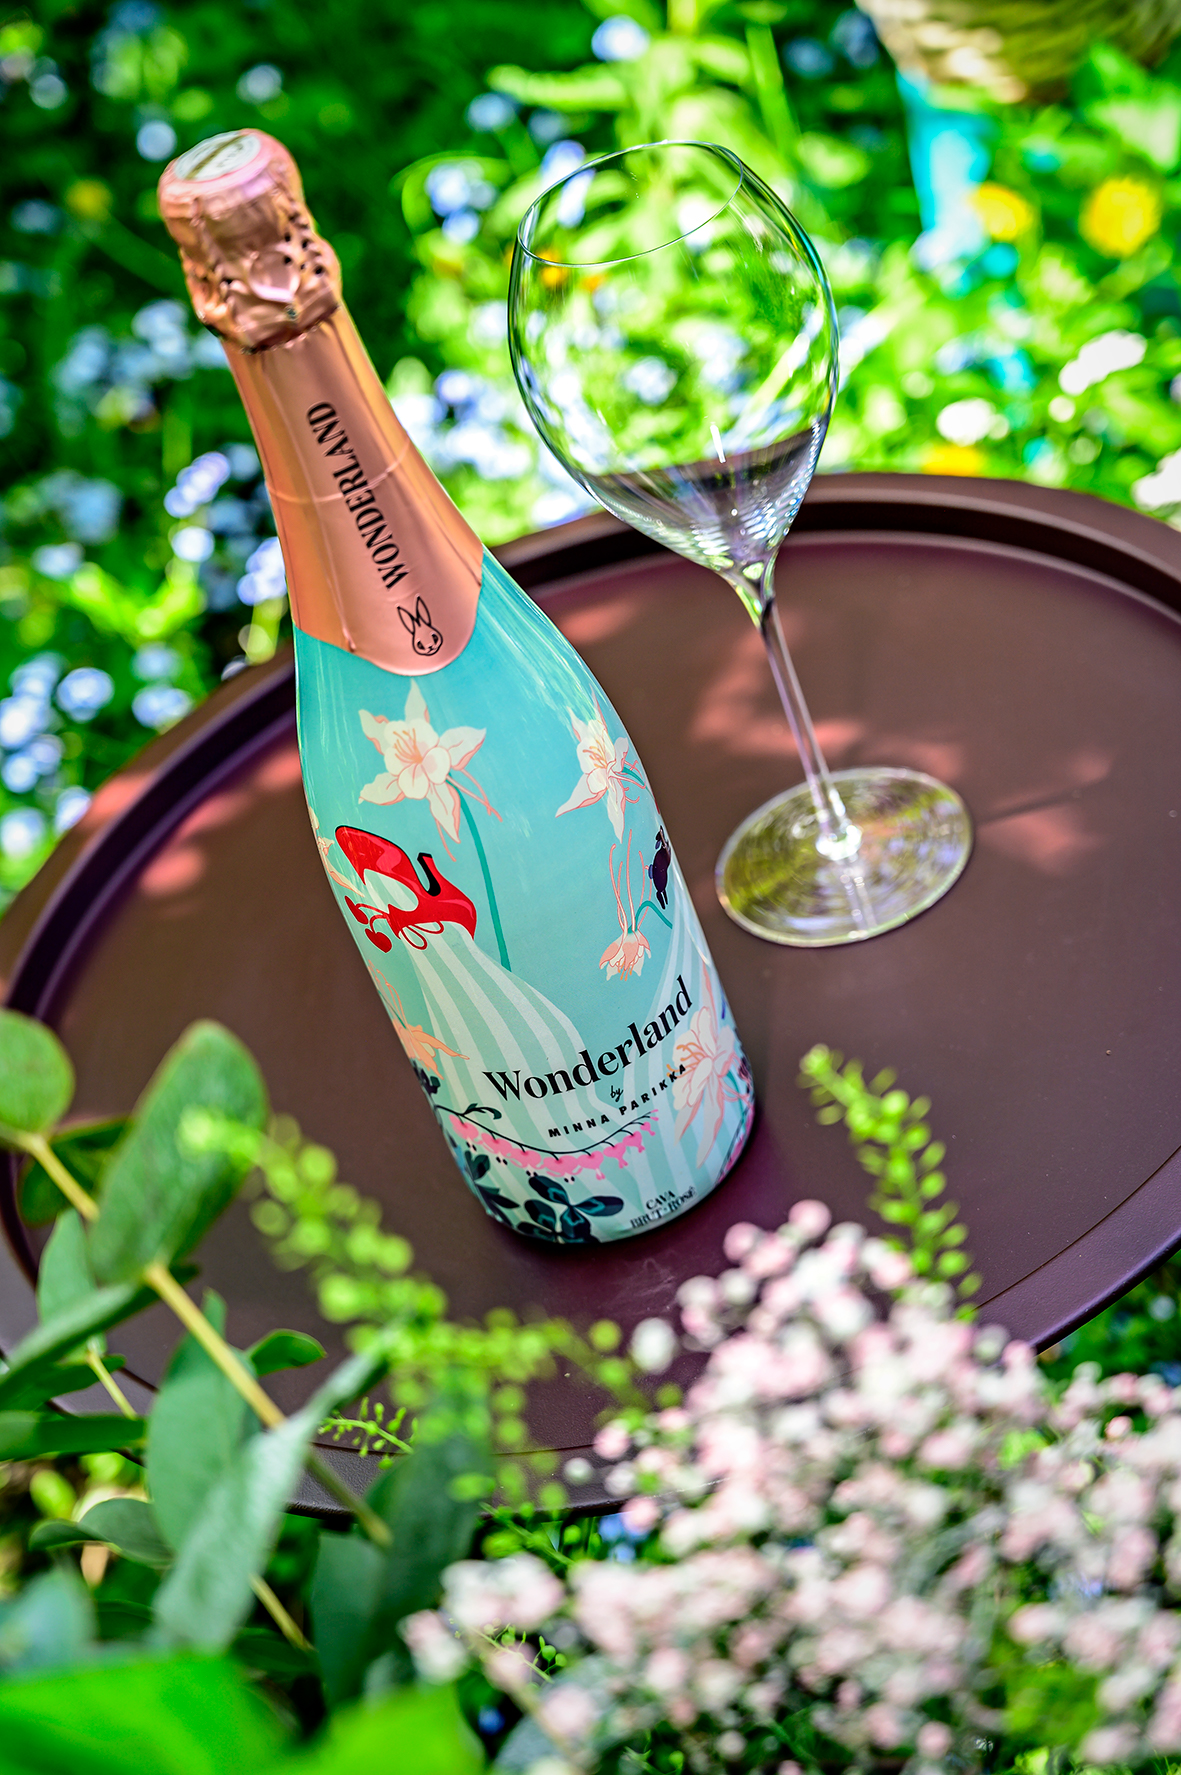 Wonderland by Minna Parikka Cava Brut Rosé